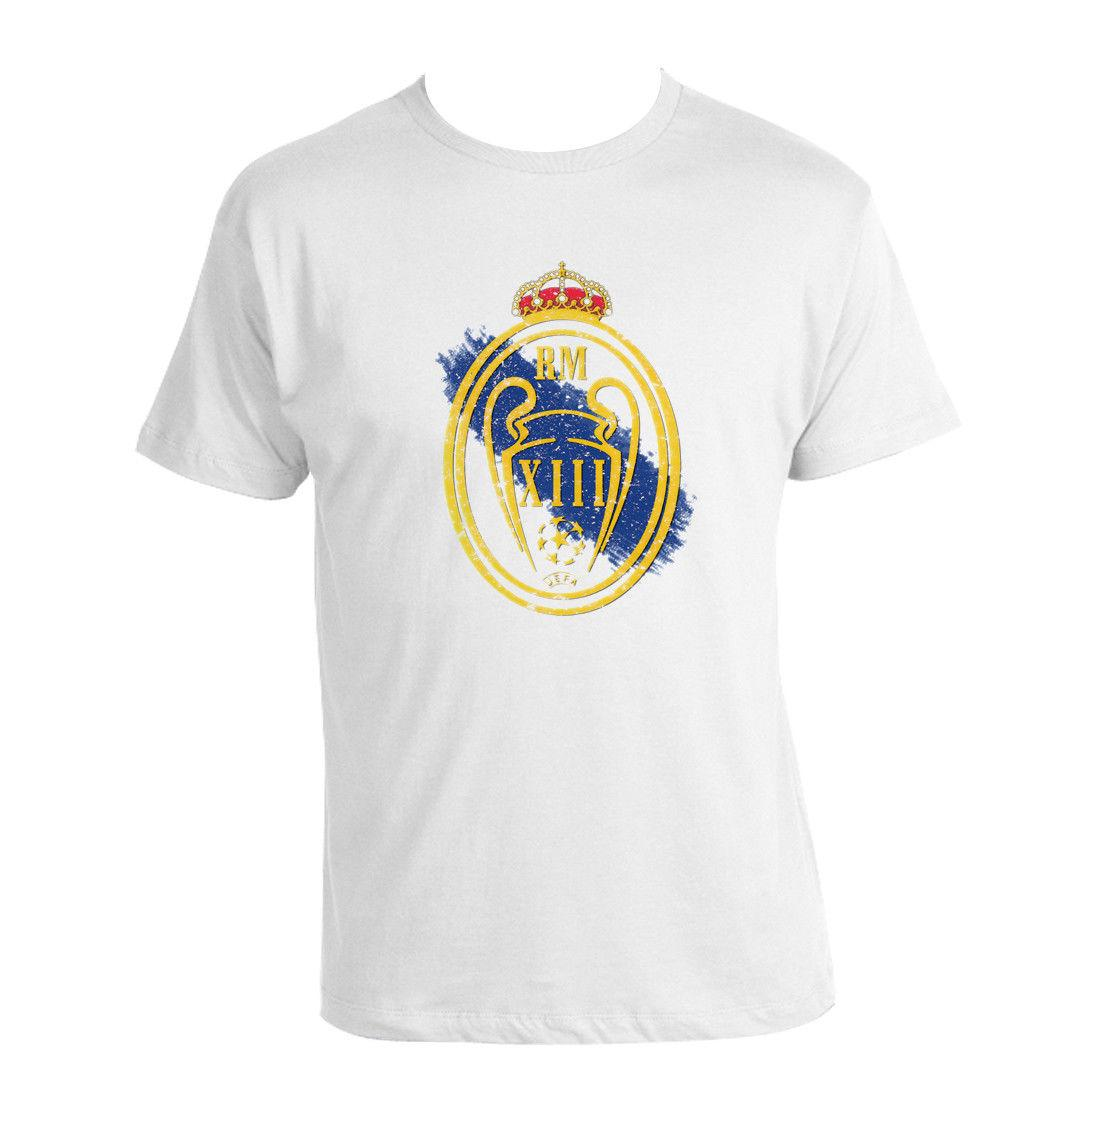 finest selection 3b238 2c881 Real Madrid C.F. shirt uefa champions league 2018 Winners T-shirt 13 Times  xiiiUnisex Funny free shipping gift Casual tee